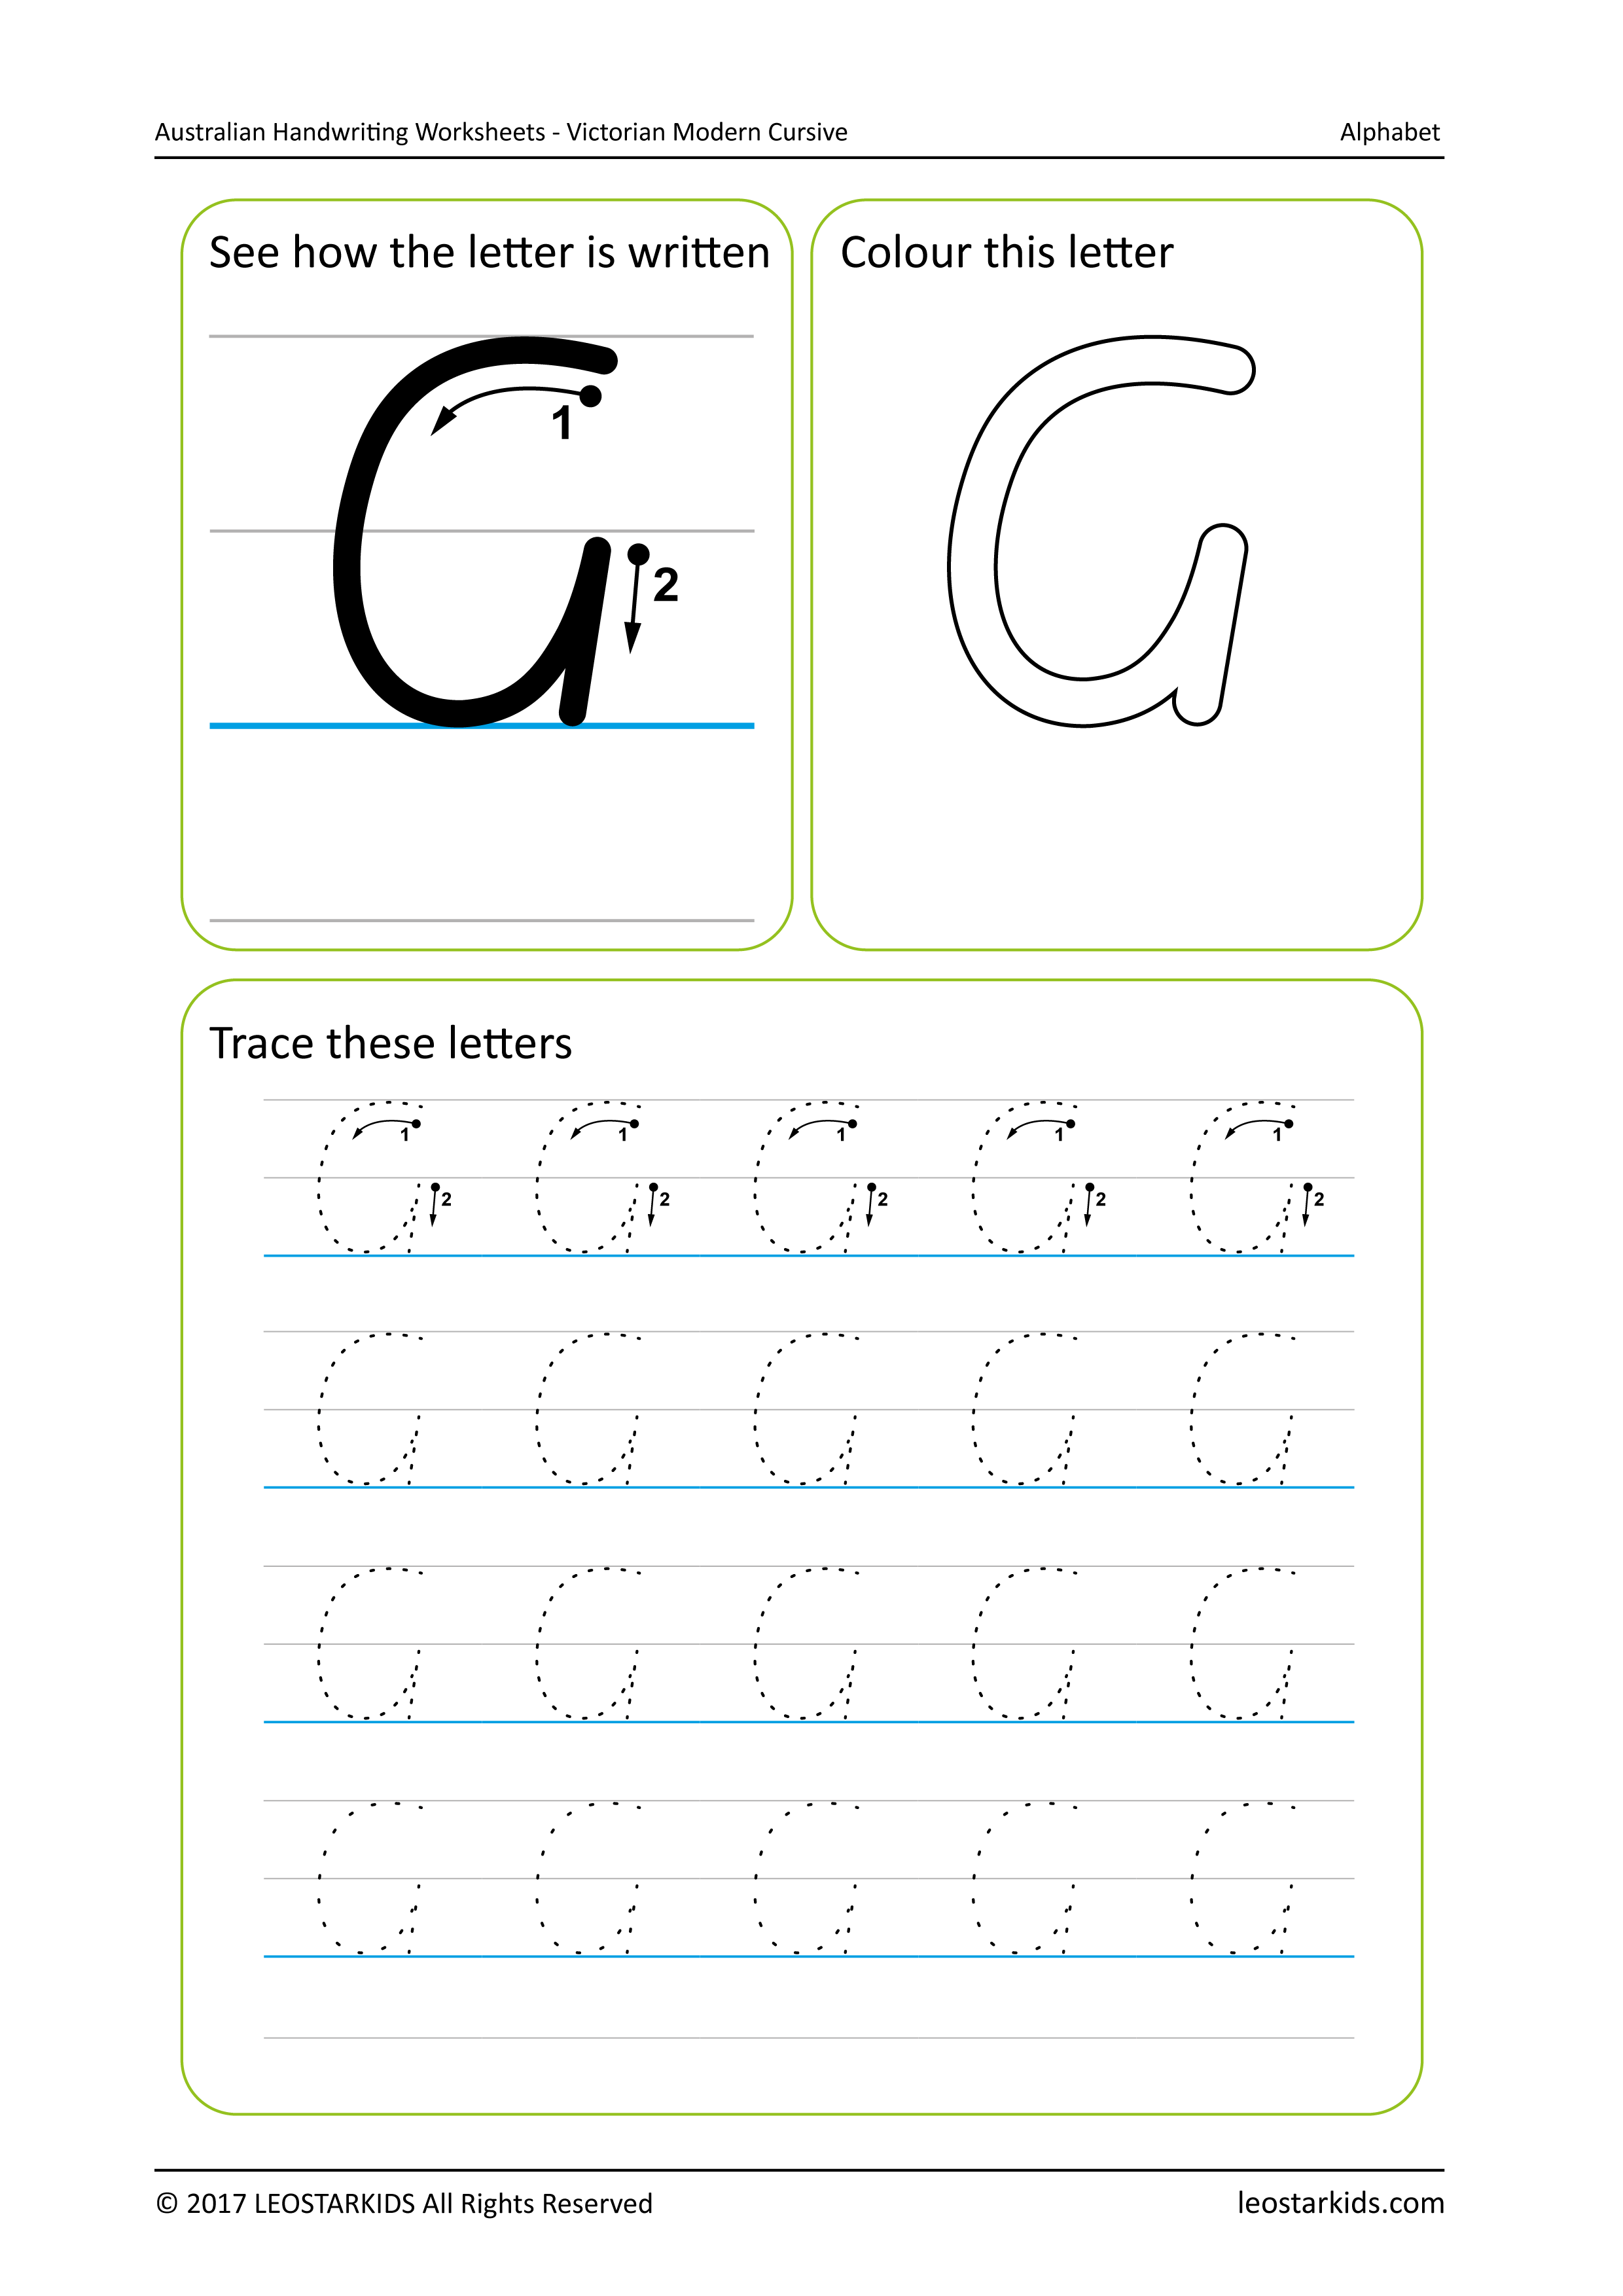 Australian Handwriting Worksheets - Victorian Modern Cursive intended for Name Tracing Nsw Font